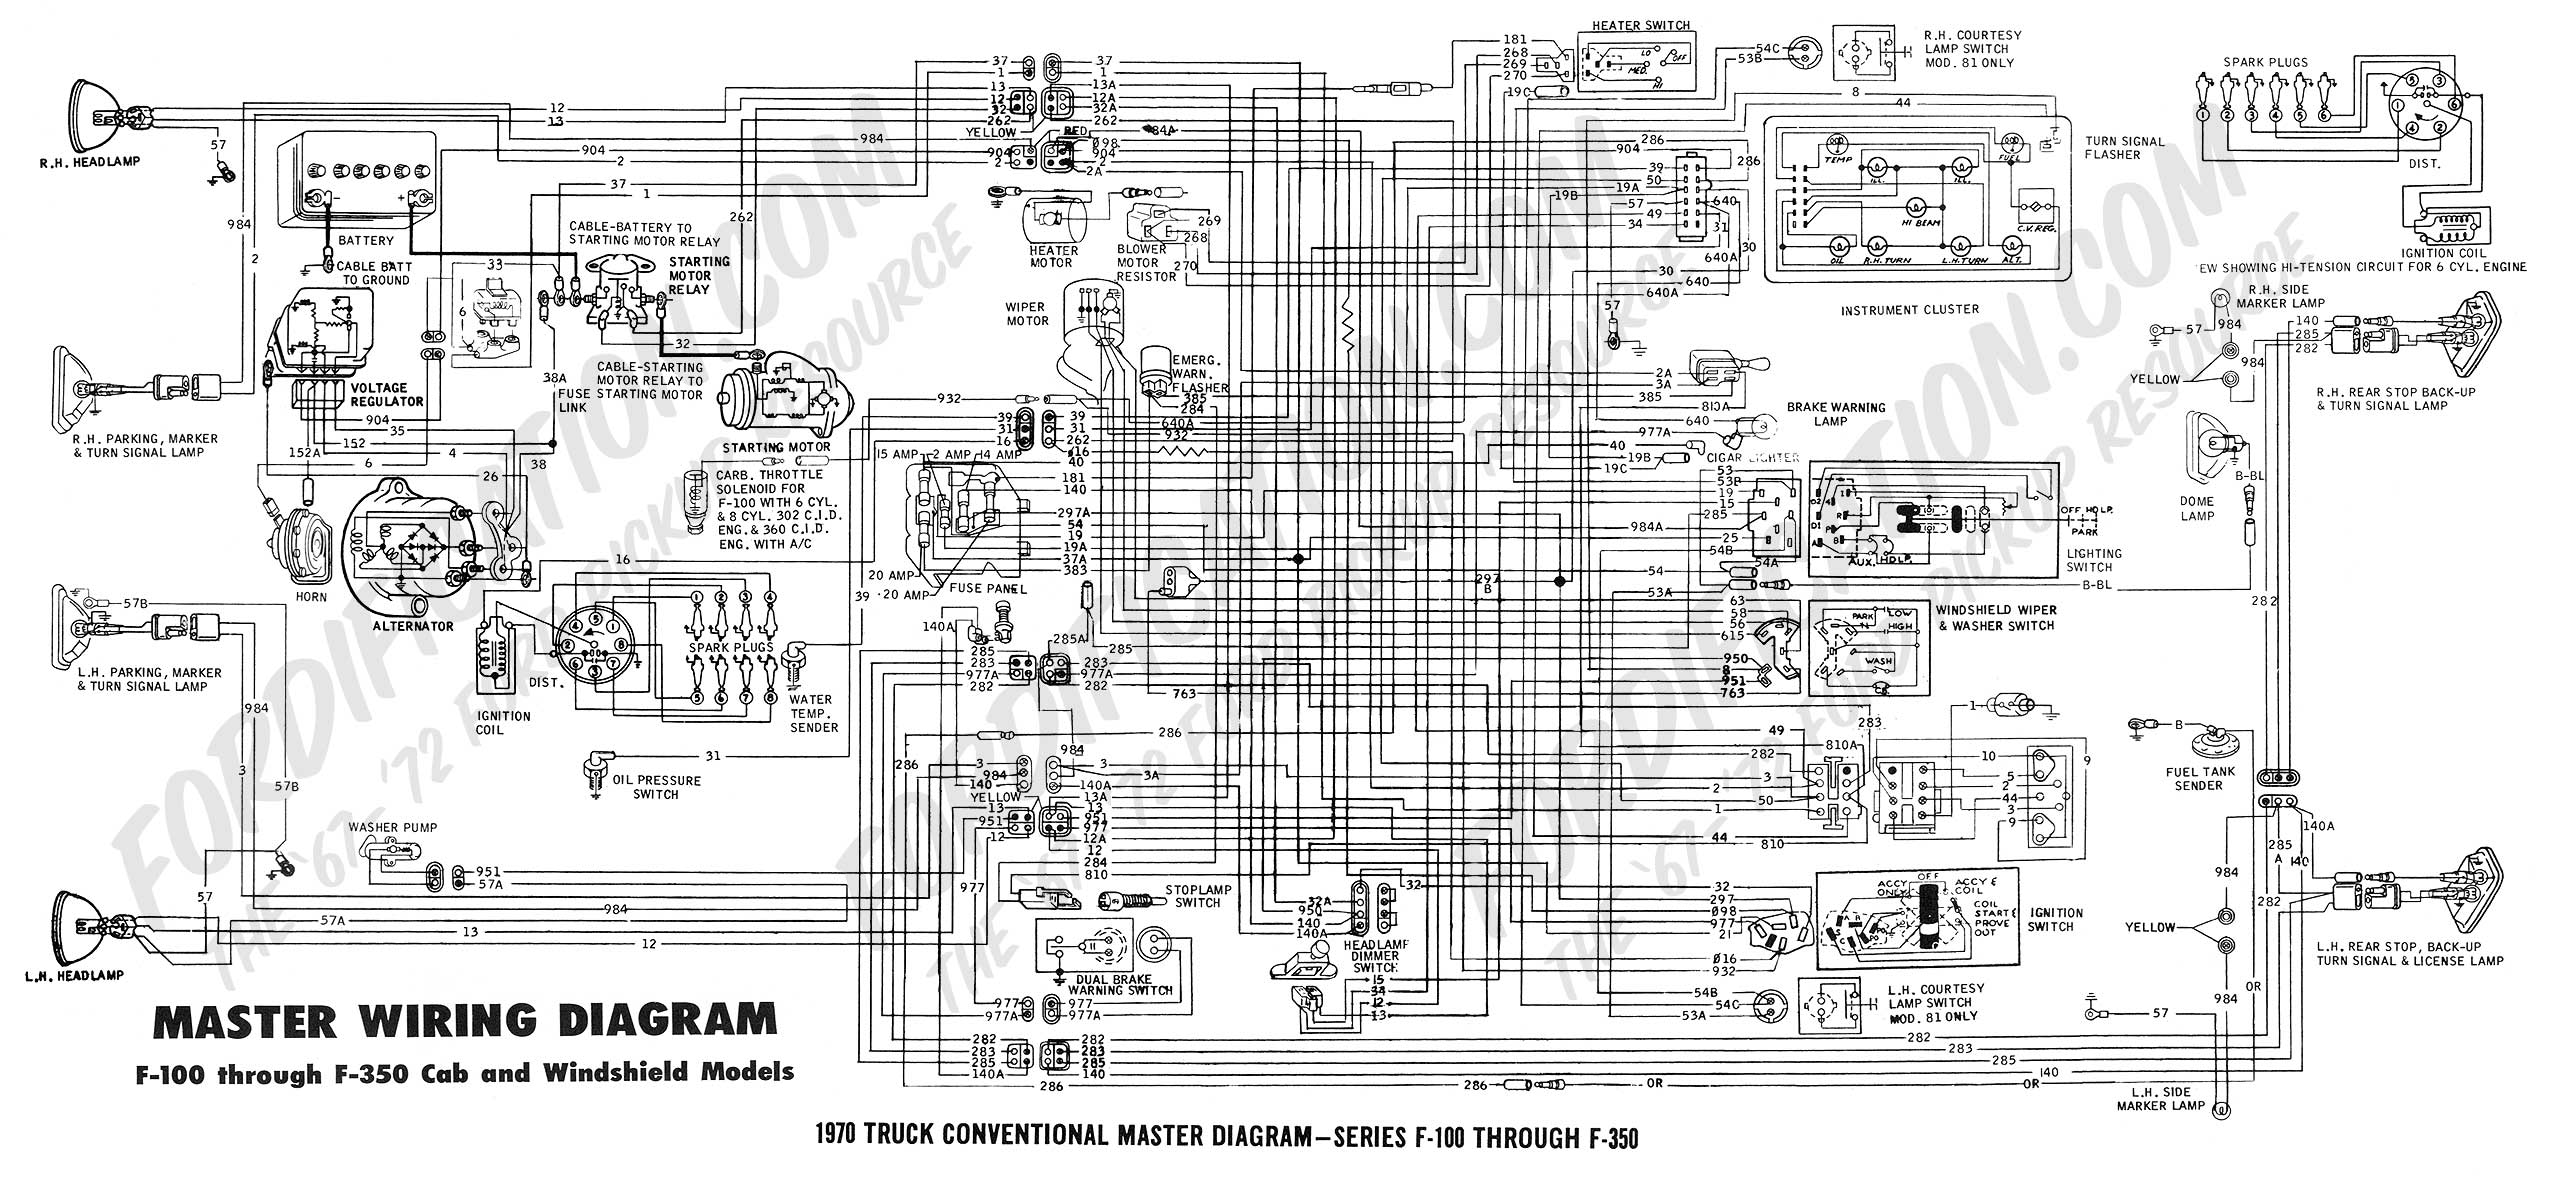 wiring diagram 70_master 2001 f350 wiring diagram ford super duty wiring diagram \u2022 wiring 1999 ford f250 wiring diagram lt frt door at alyssarenee.co